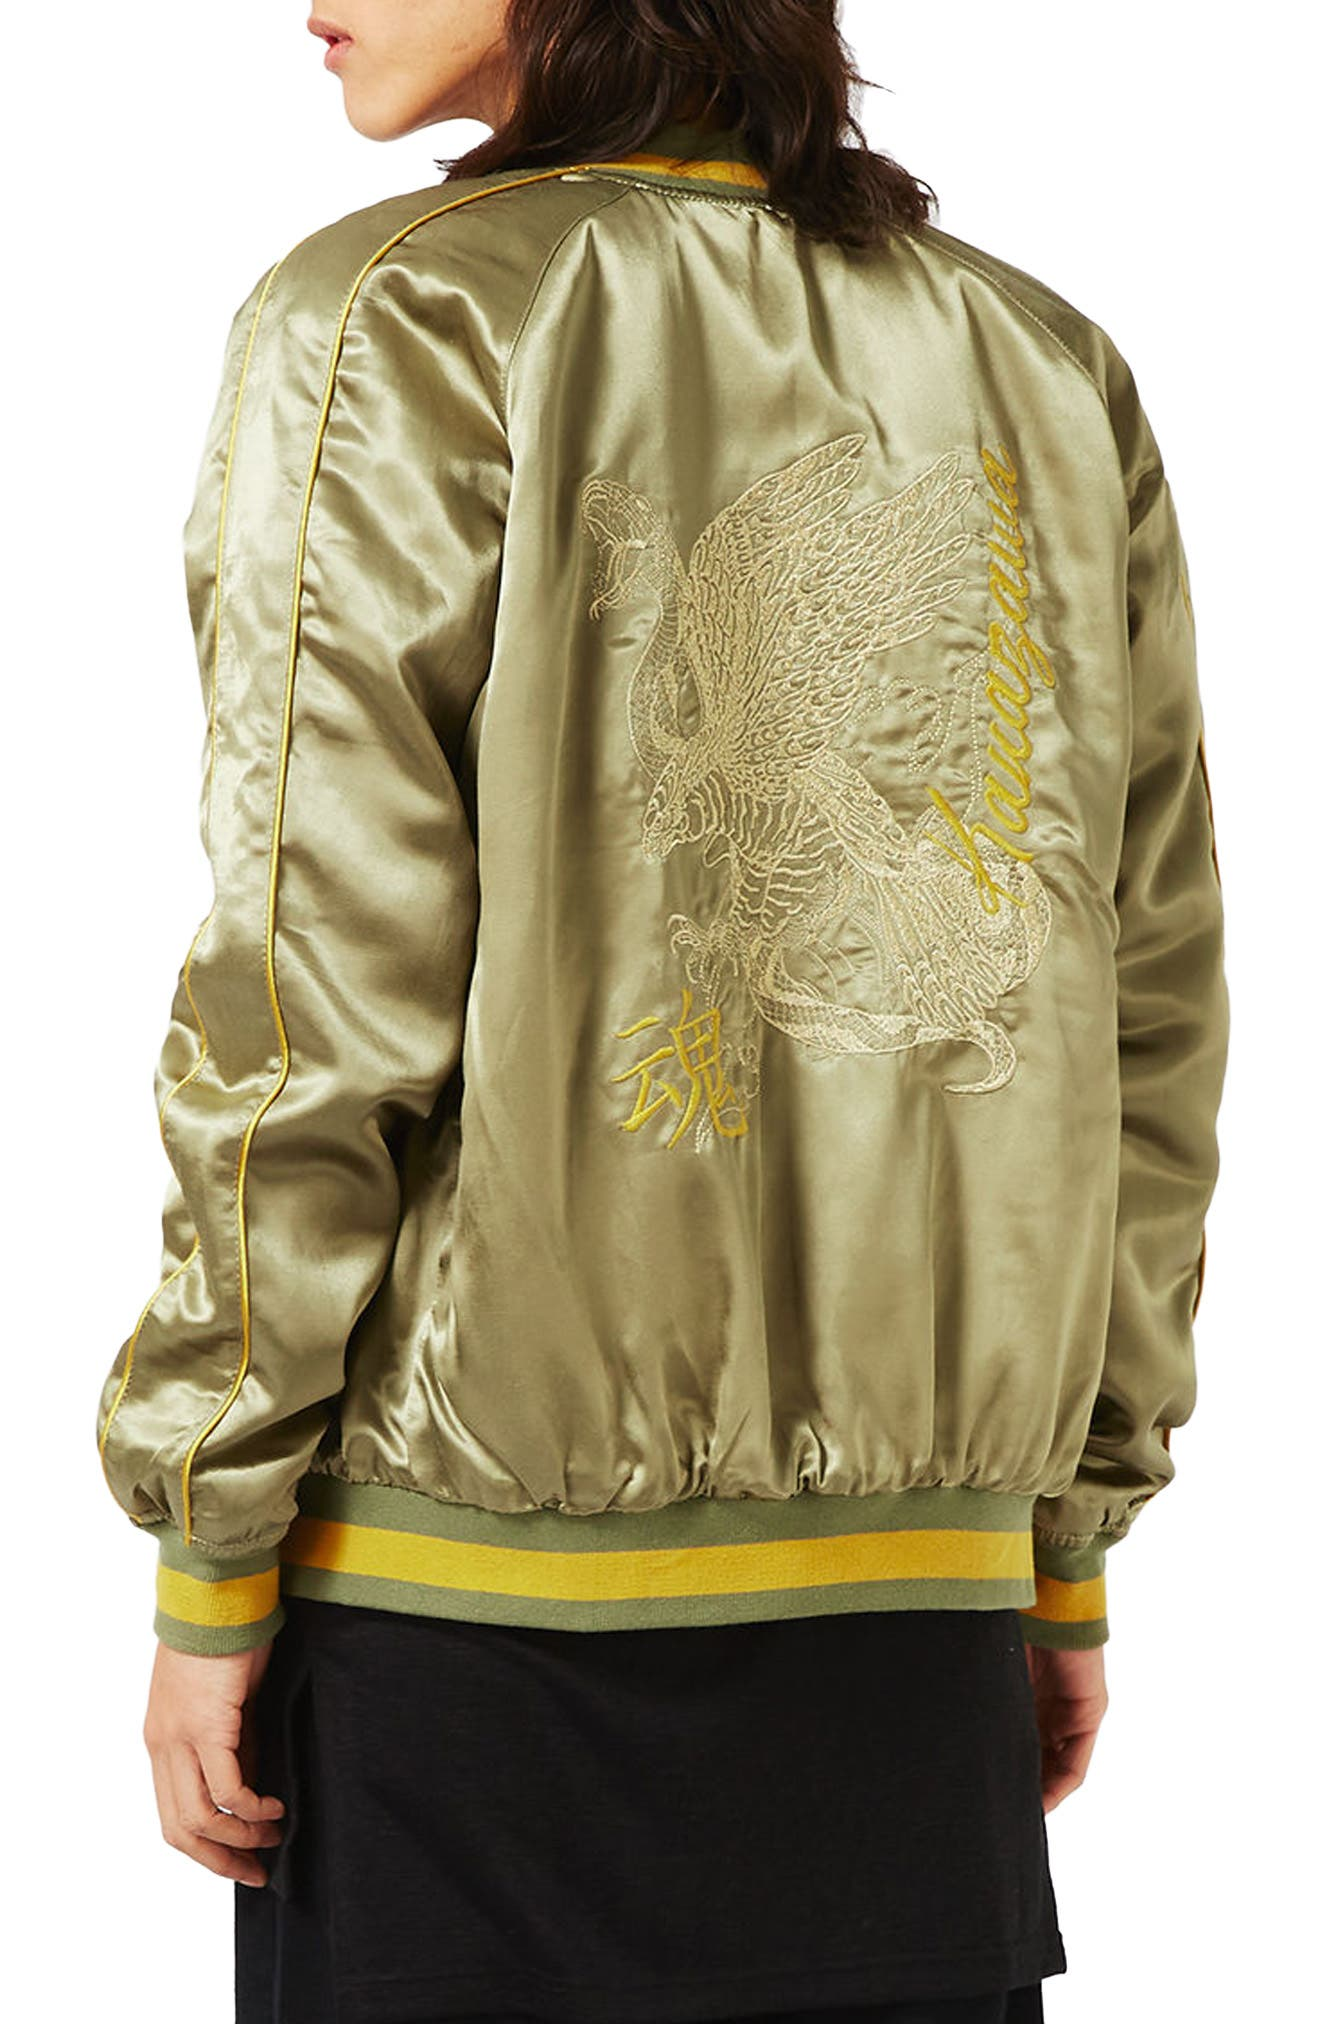 Alternate Image 1 Selected - Topman Embroidered Python Souvenir Jacket